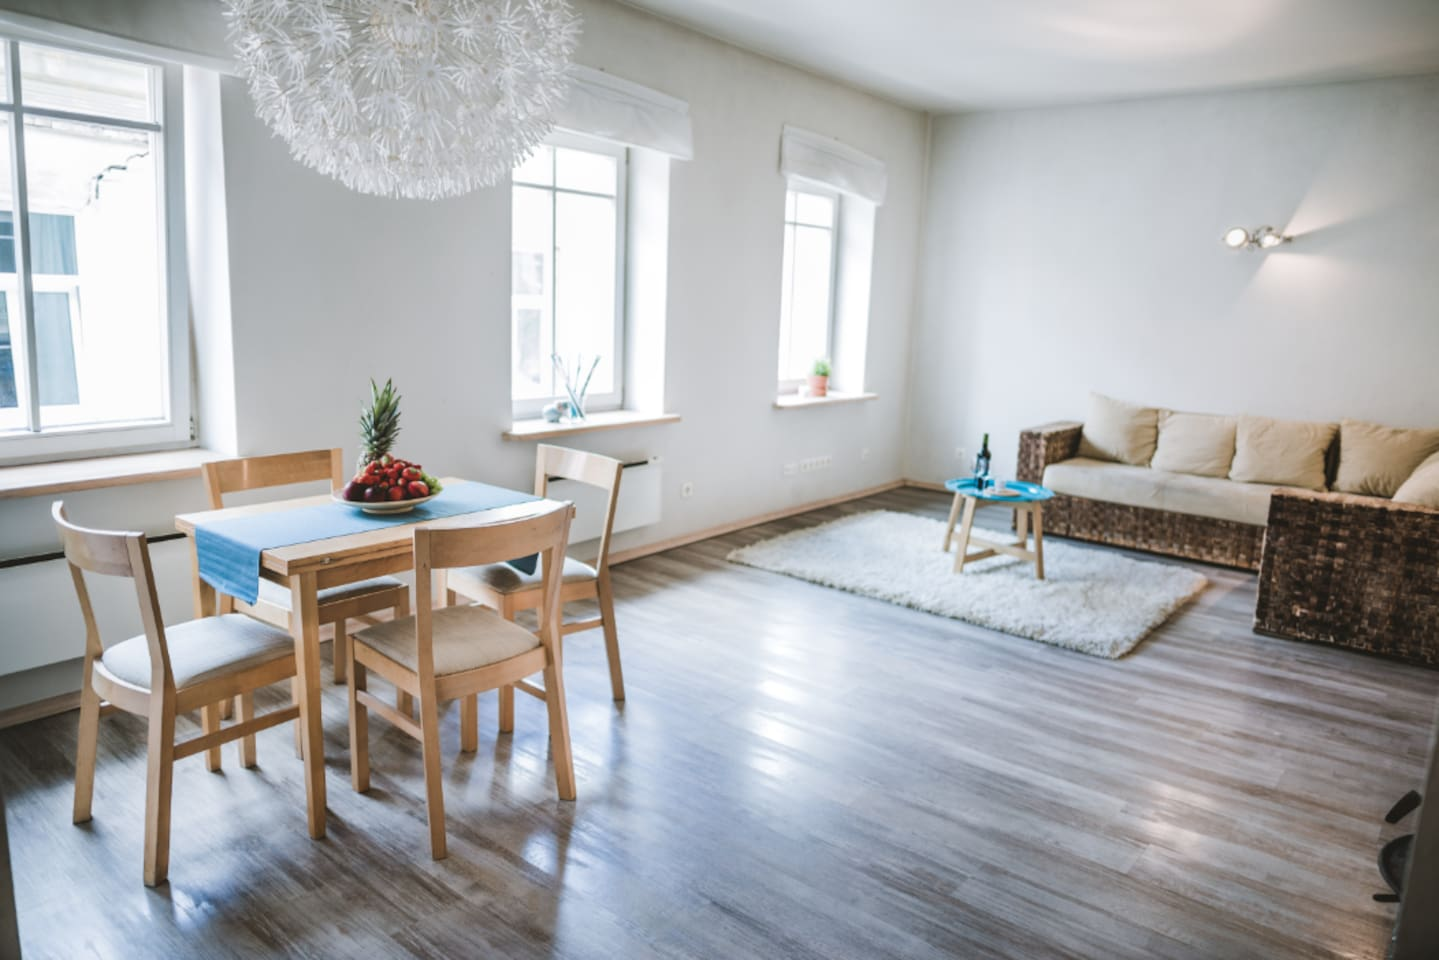 Spacious and bright common area with a dining table and a cozy corner sofa